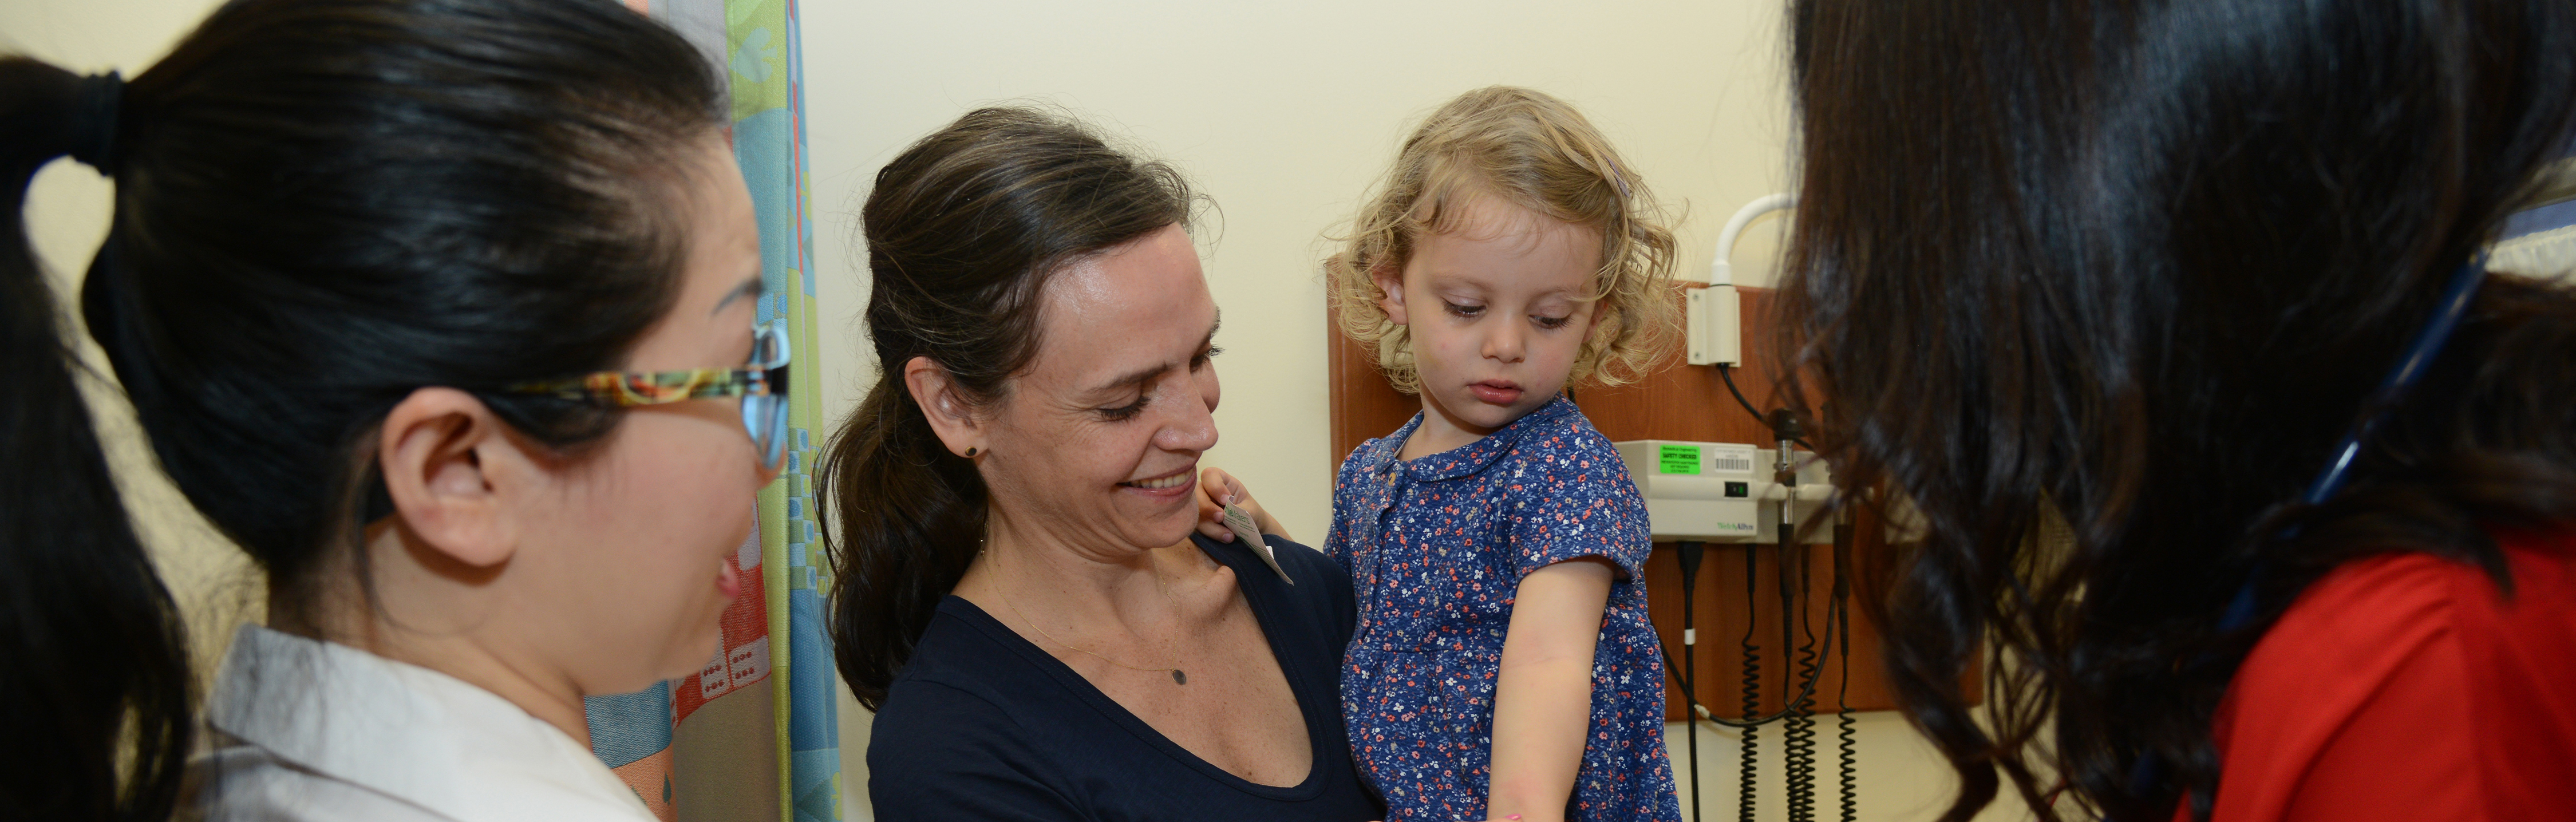 The Weill Cornell Medicine Pediatric Allergy and Immunology team examining a pediatric patient